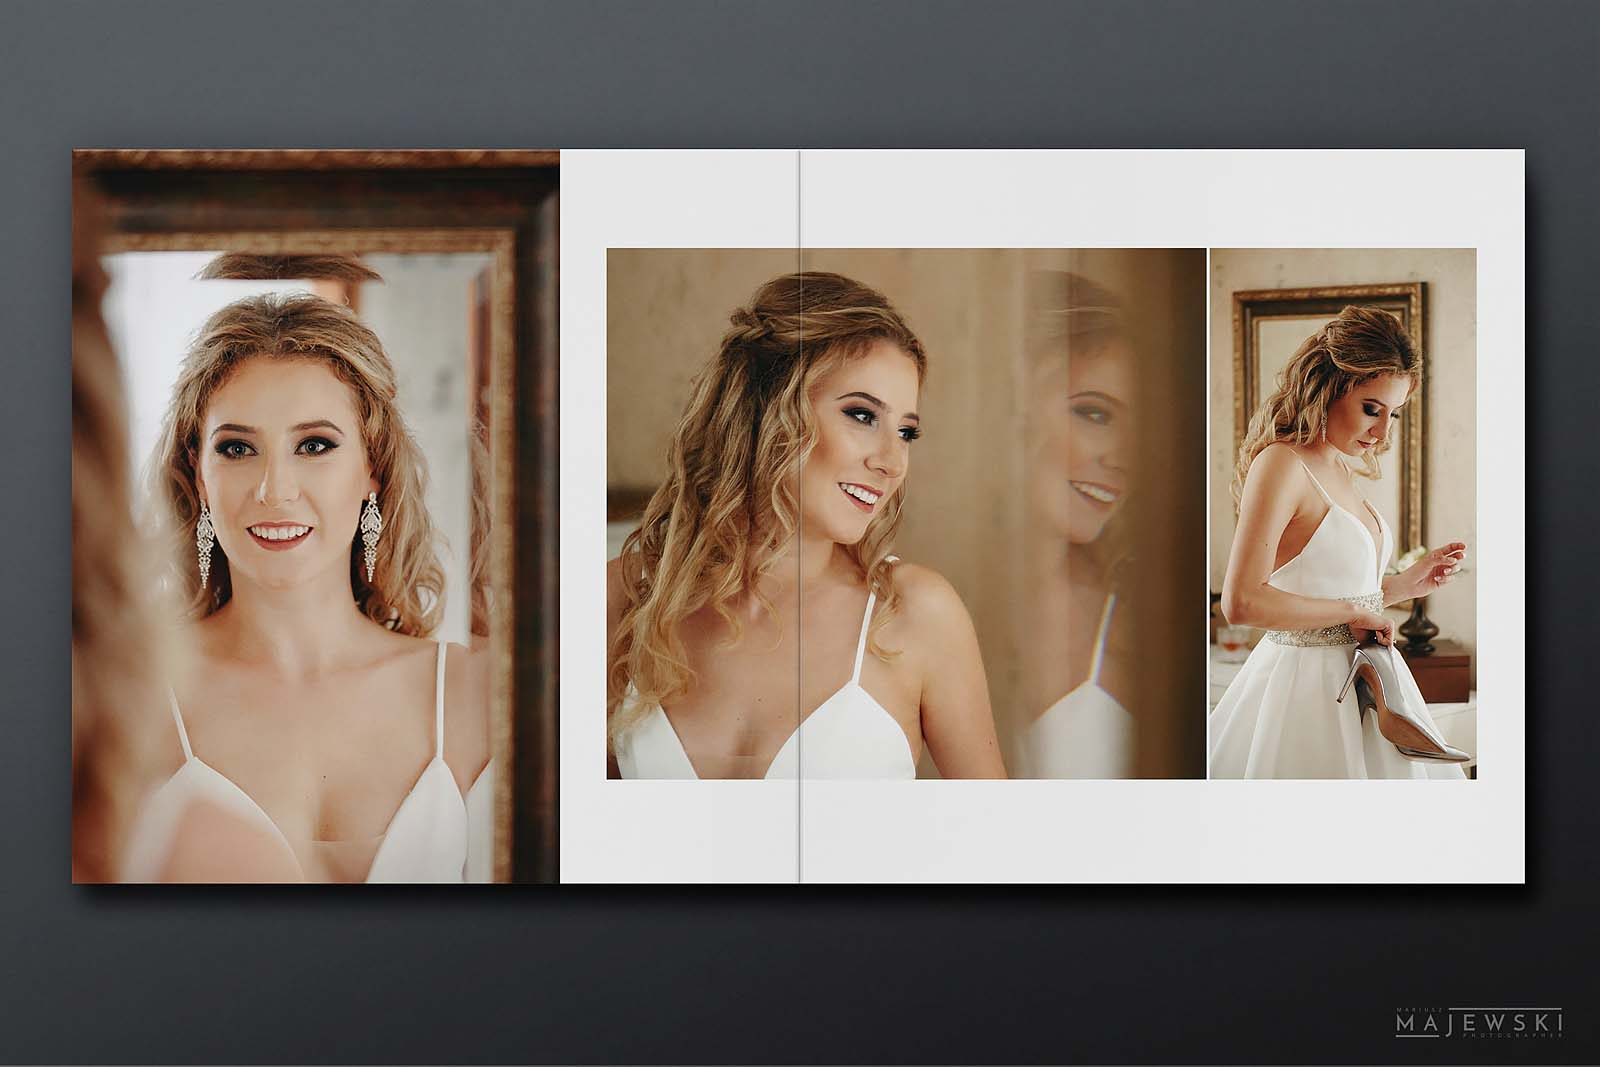 wedding-photo-album-mariusz-majewski-16071307